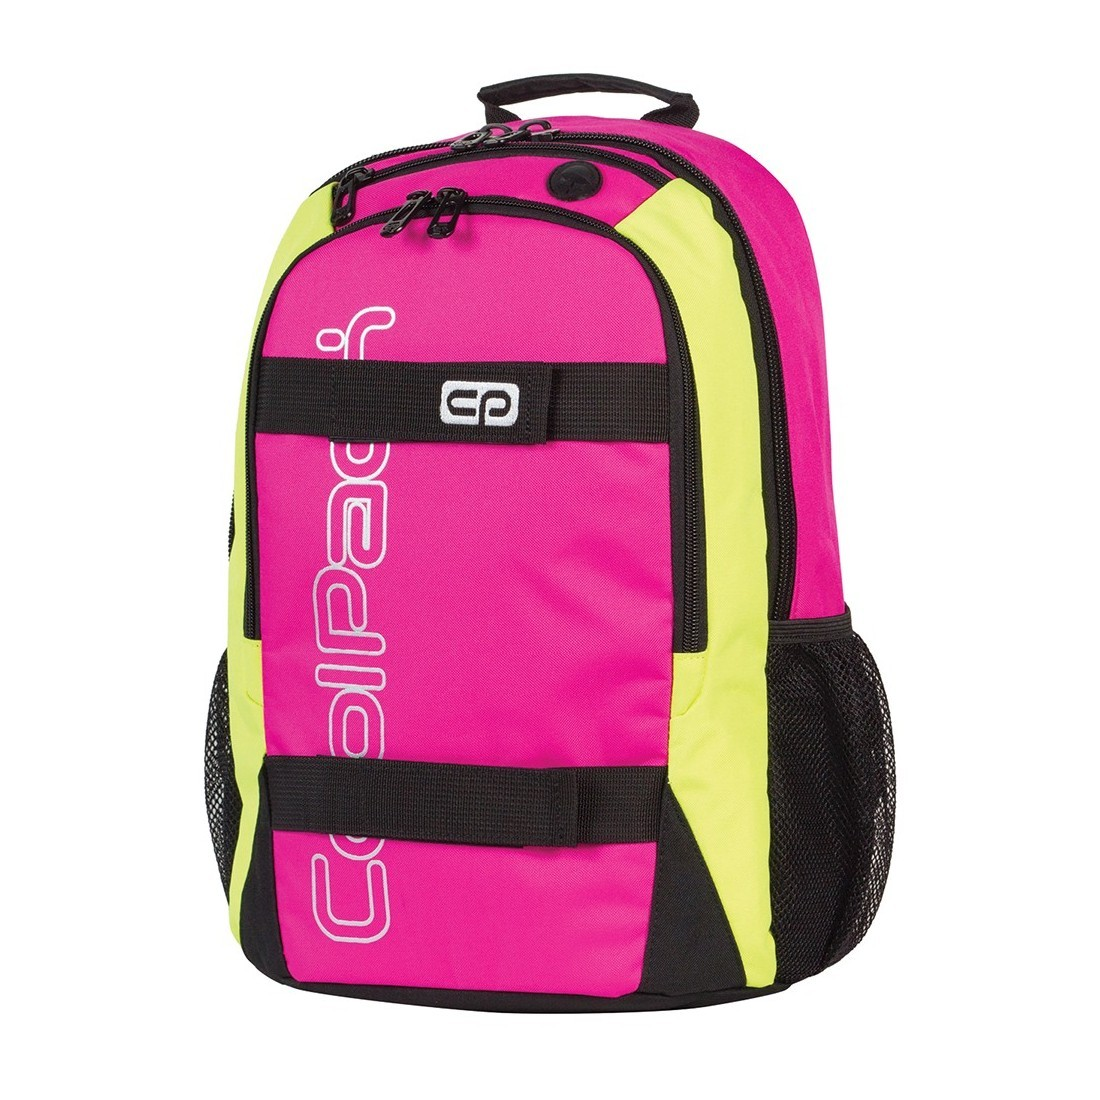 Plecak młodzieżowy CoolPack ACTION 2 przegrody PINK NEON CP 431 - plecak-tornister.pl